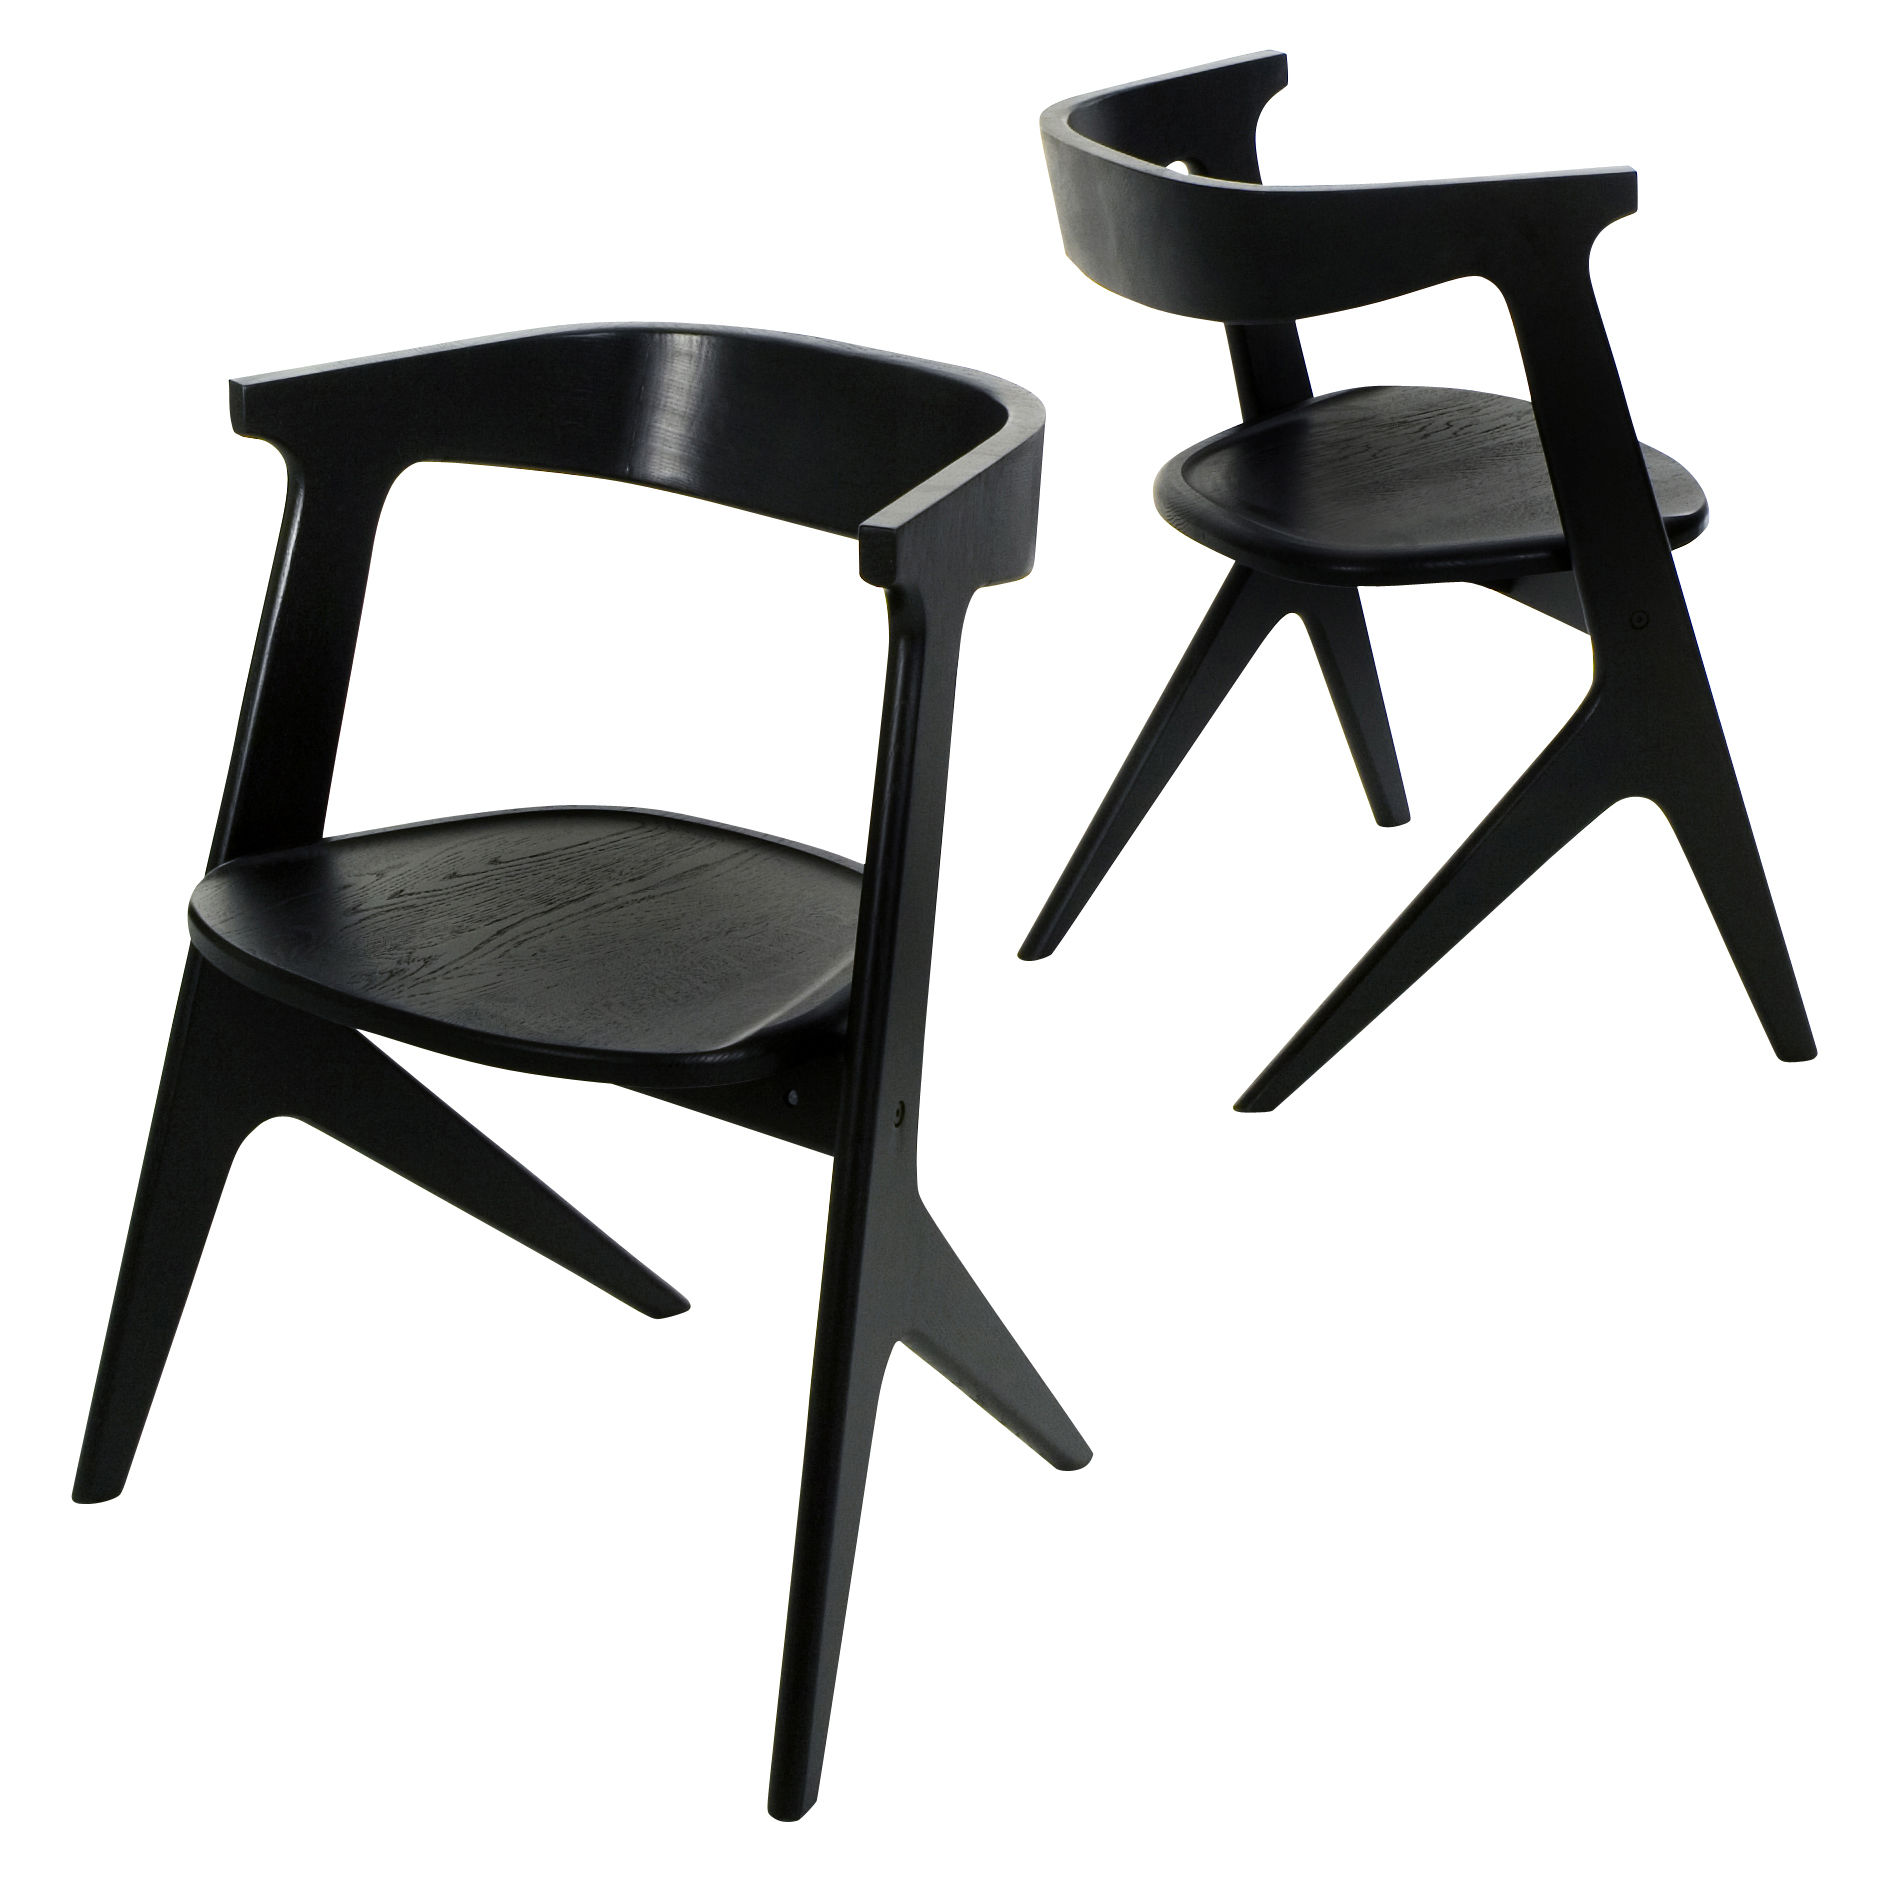 Furniture - Chairs - Slab Stacking chair - Wood by Tom Dixon - Black lacquer - Painted oak